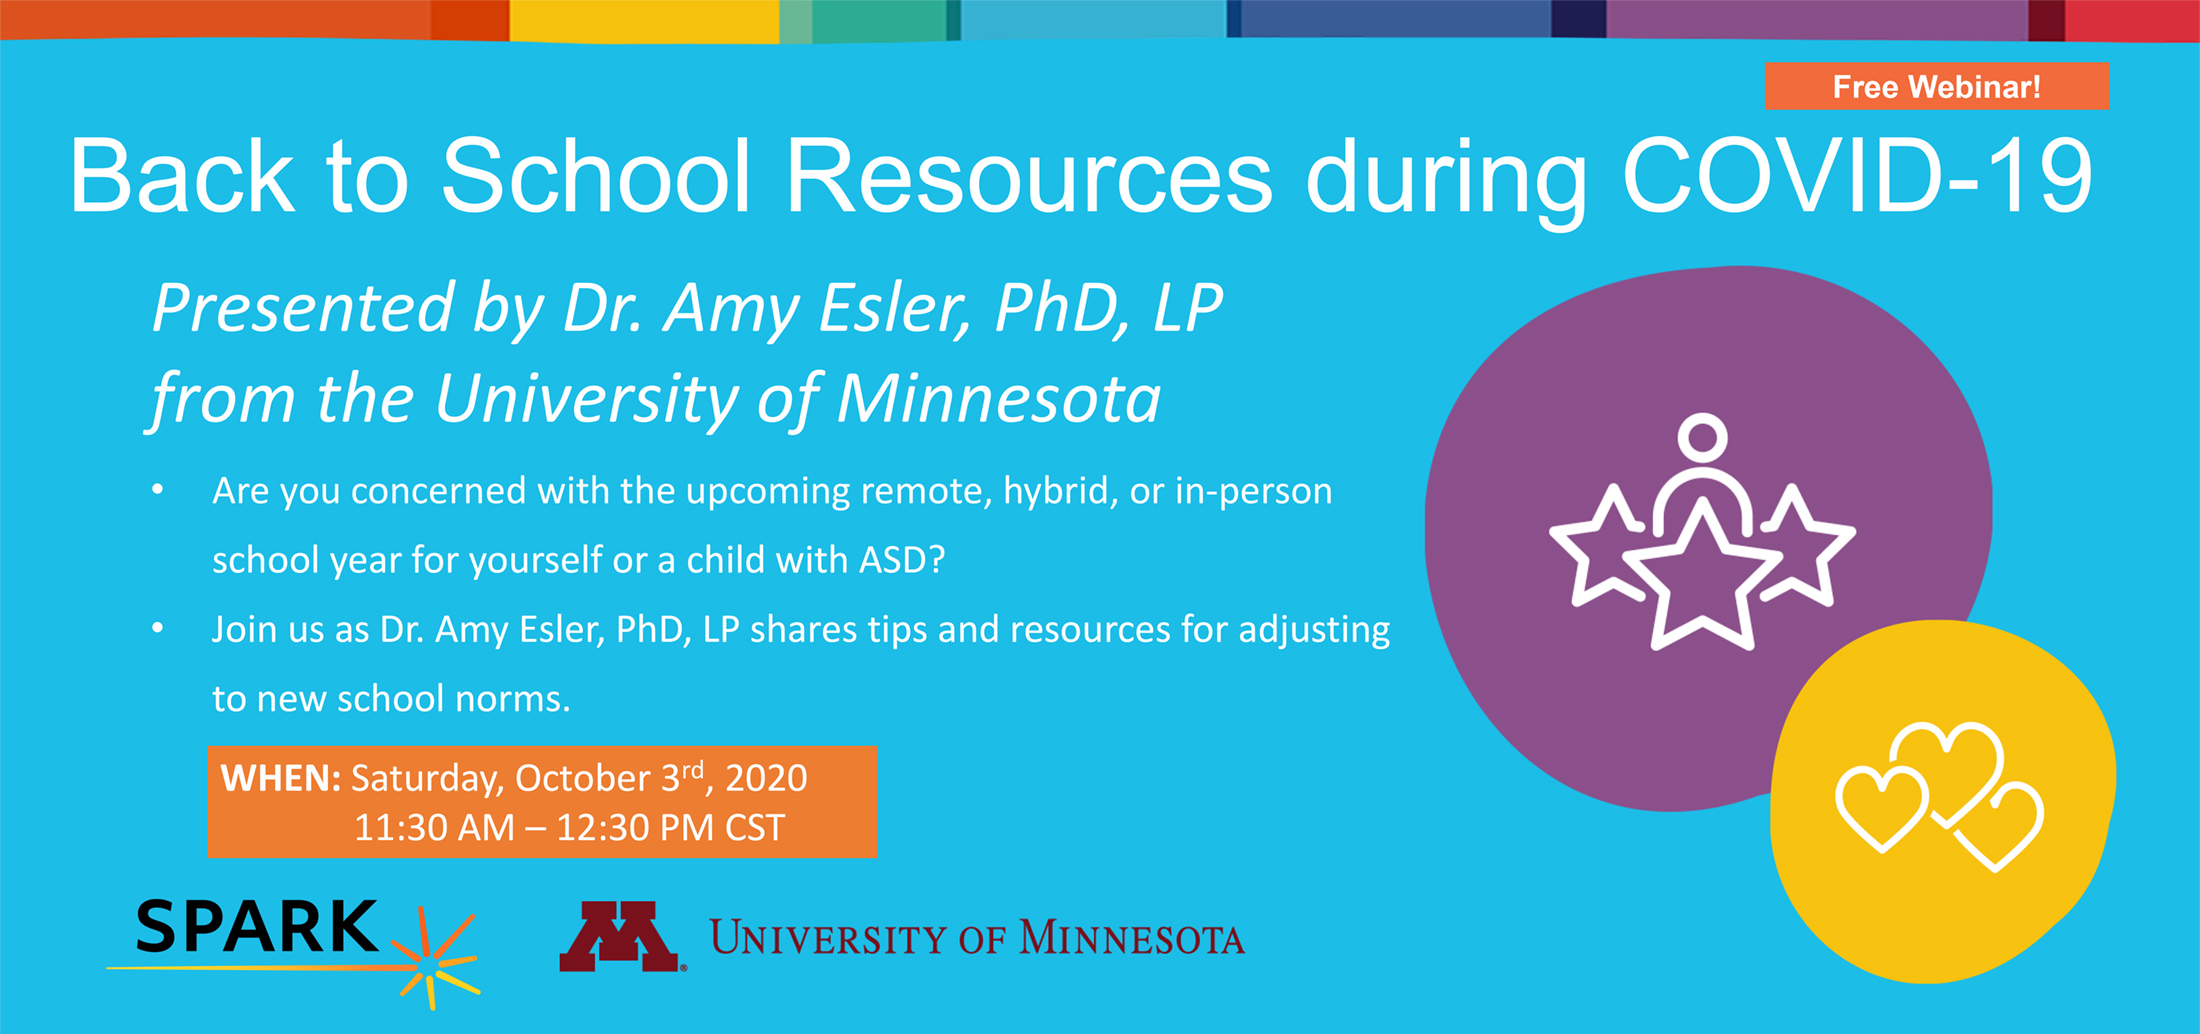 Free Webinar: Back to School Resources during COVID 19